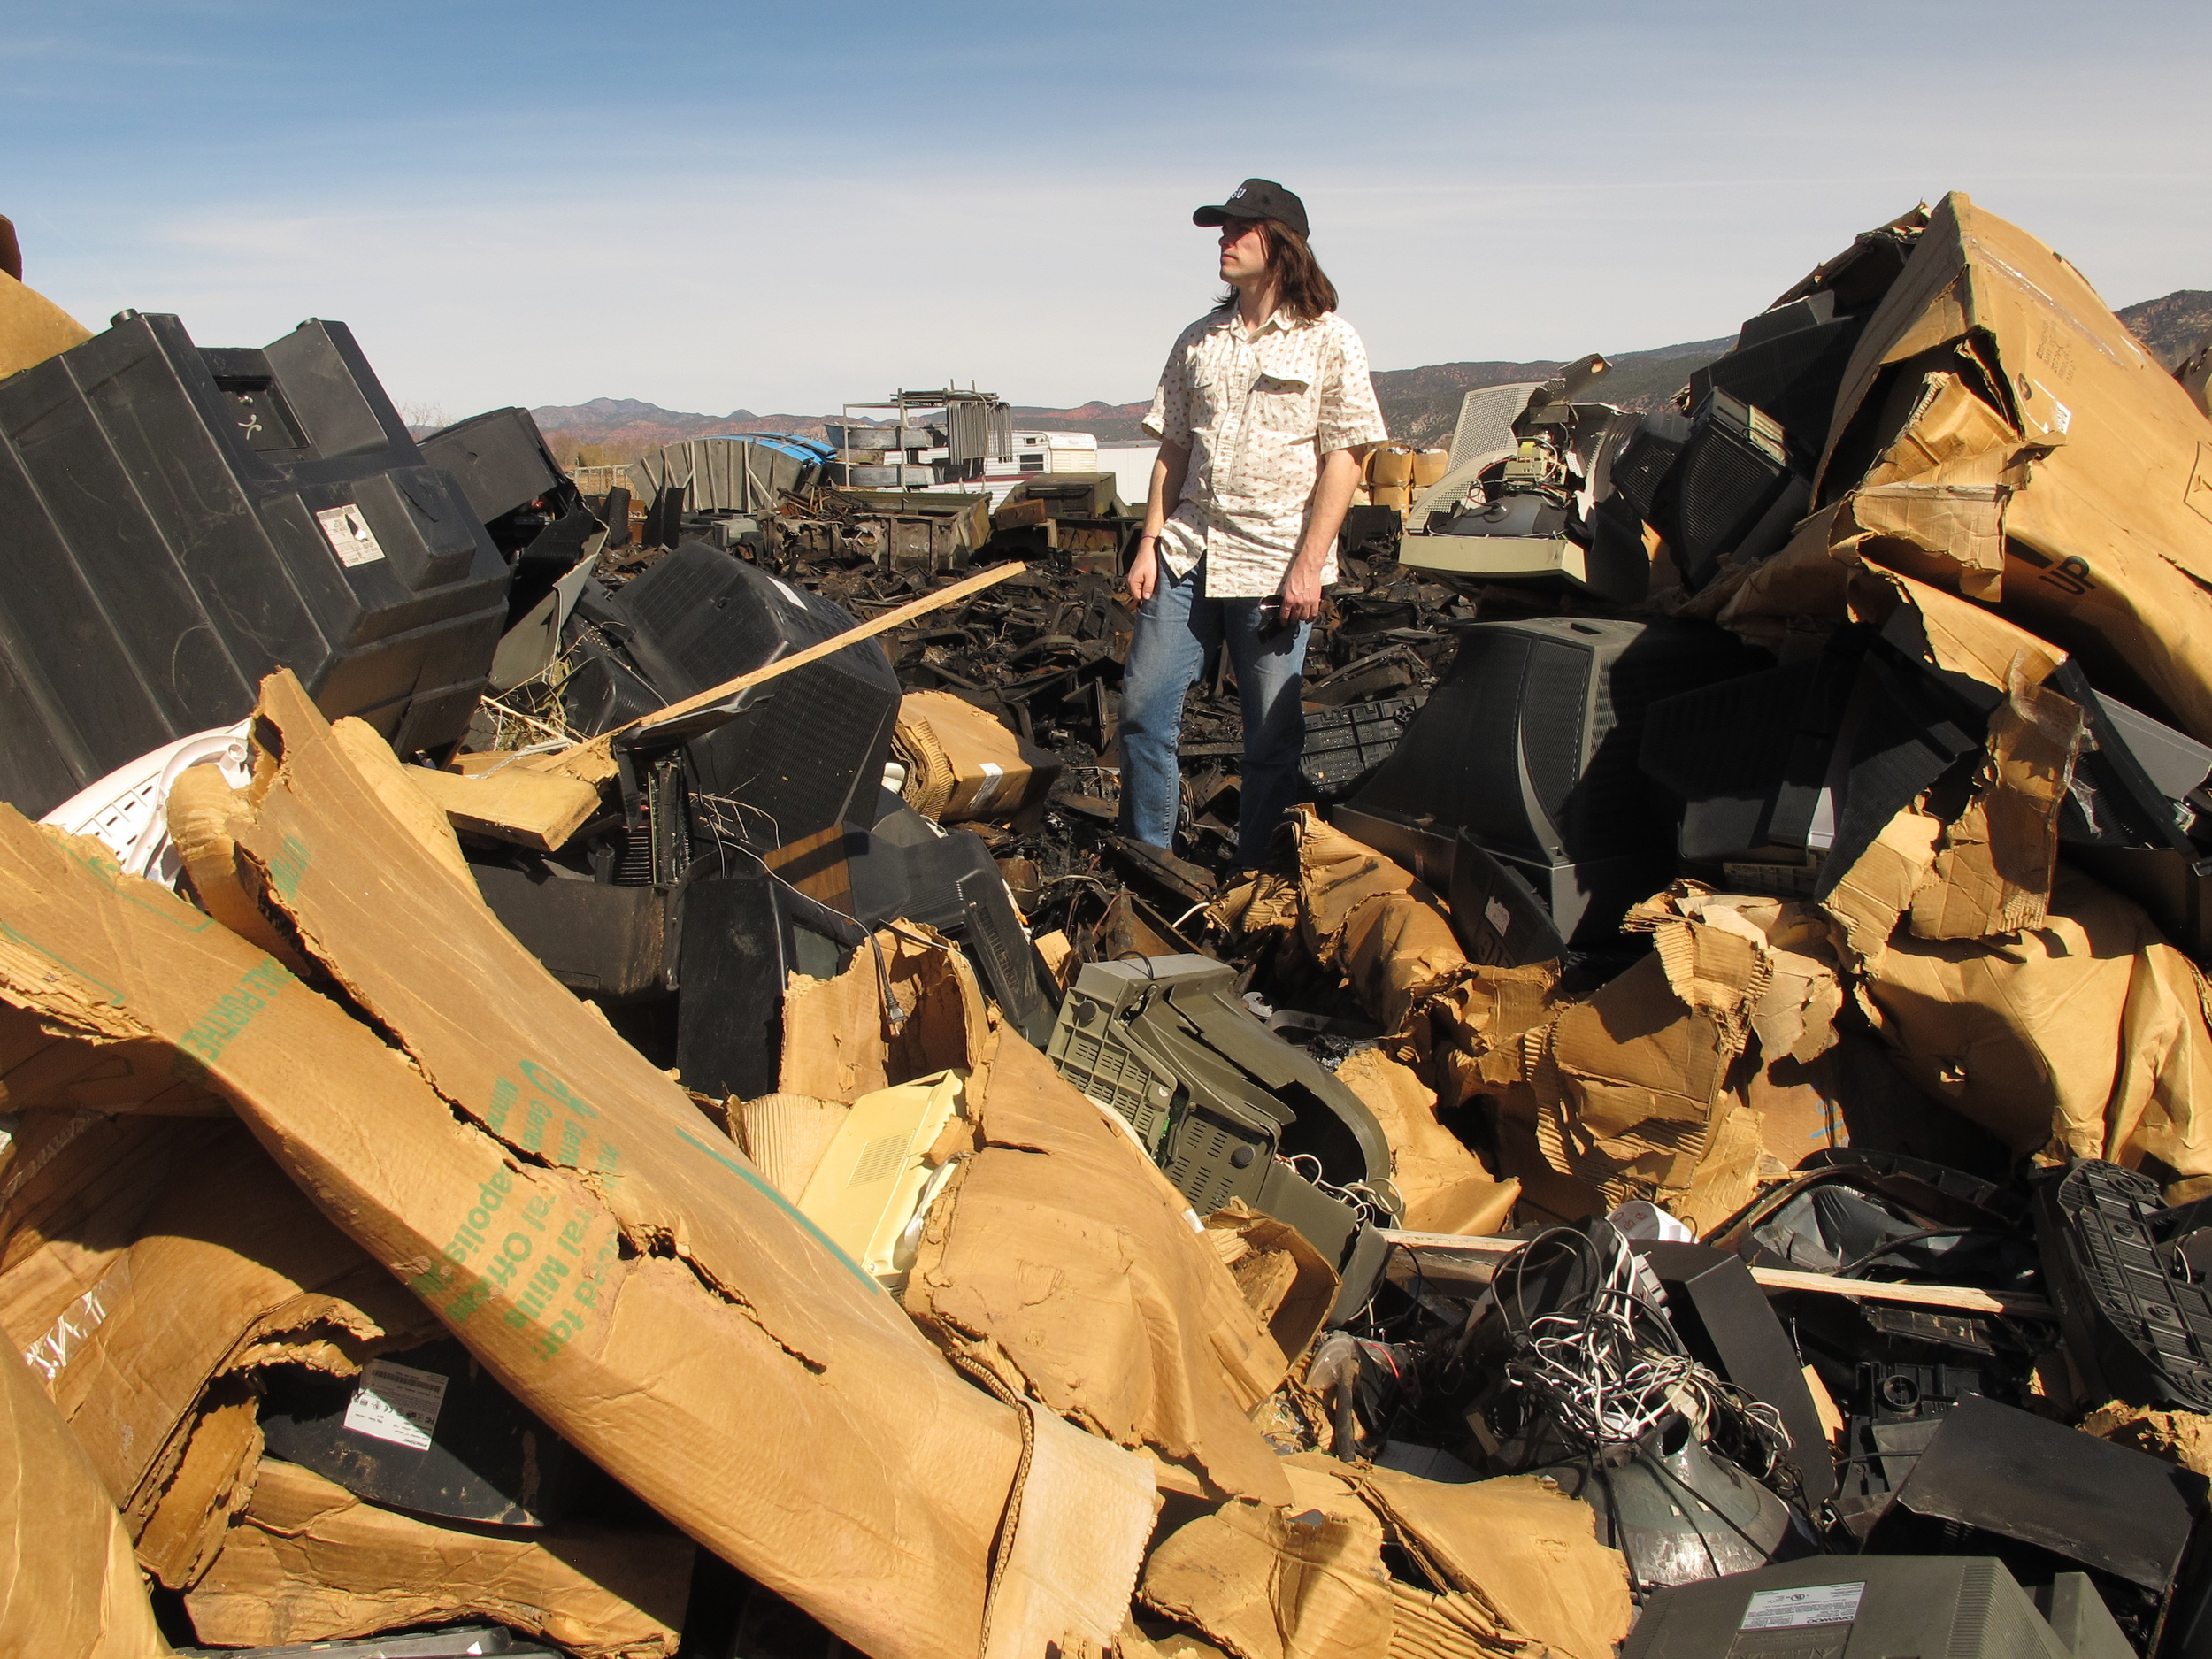 BAN's researcher scans the TV wasteland at Stone Castle Recycling, Parowan, Utah. Copyright BAN 2014.